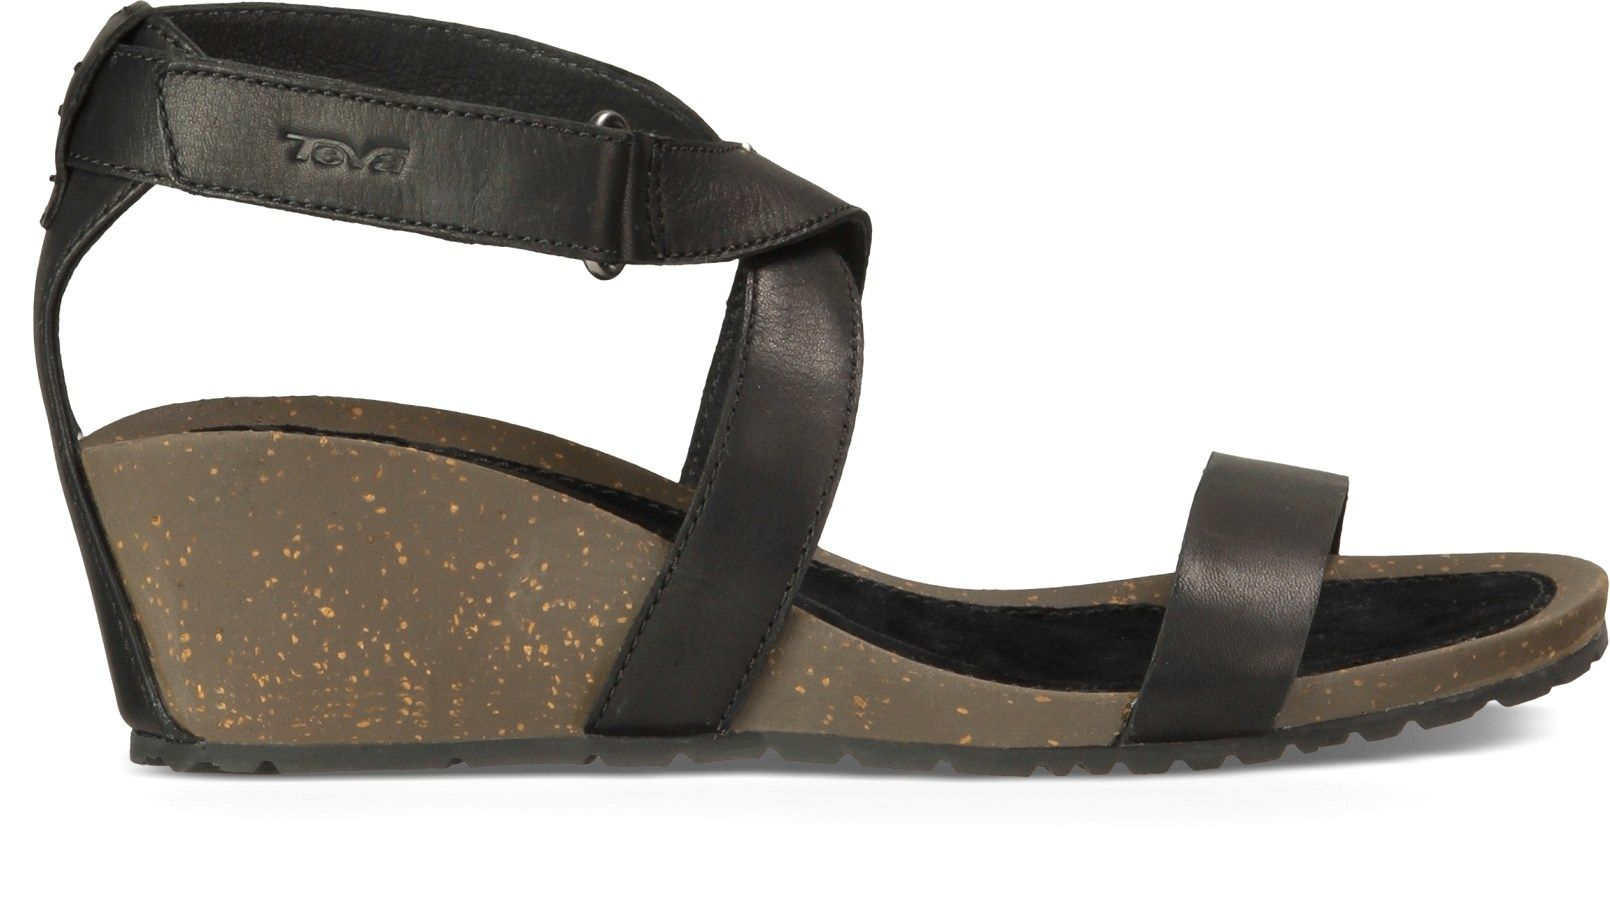 883b62bc5b50d0 Teva Cabrillo Strap Wedge 2 Sandals - Women s - REI.com